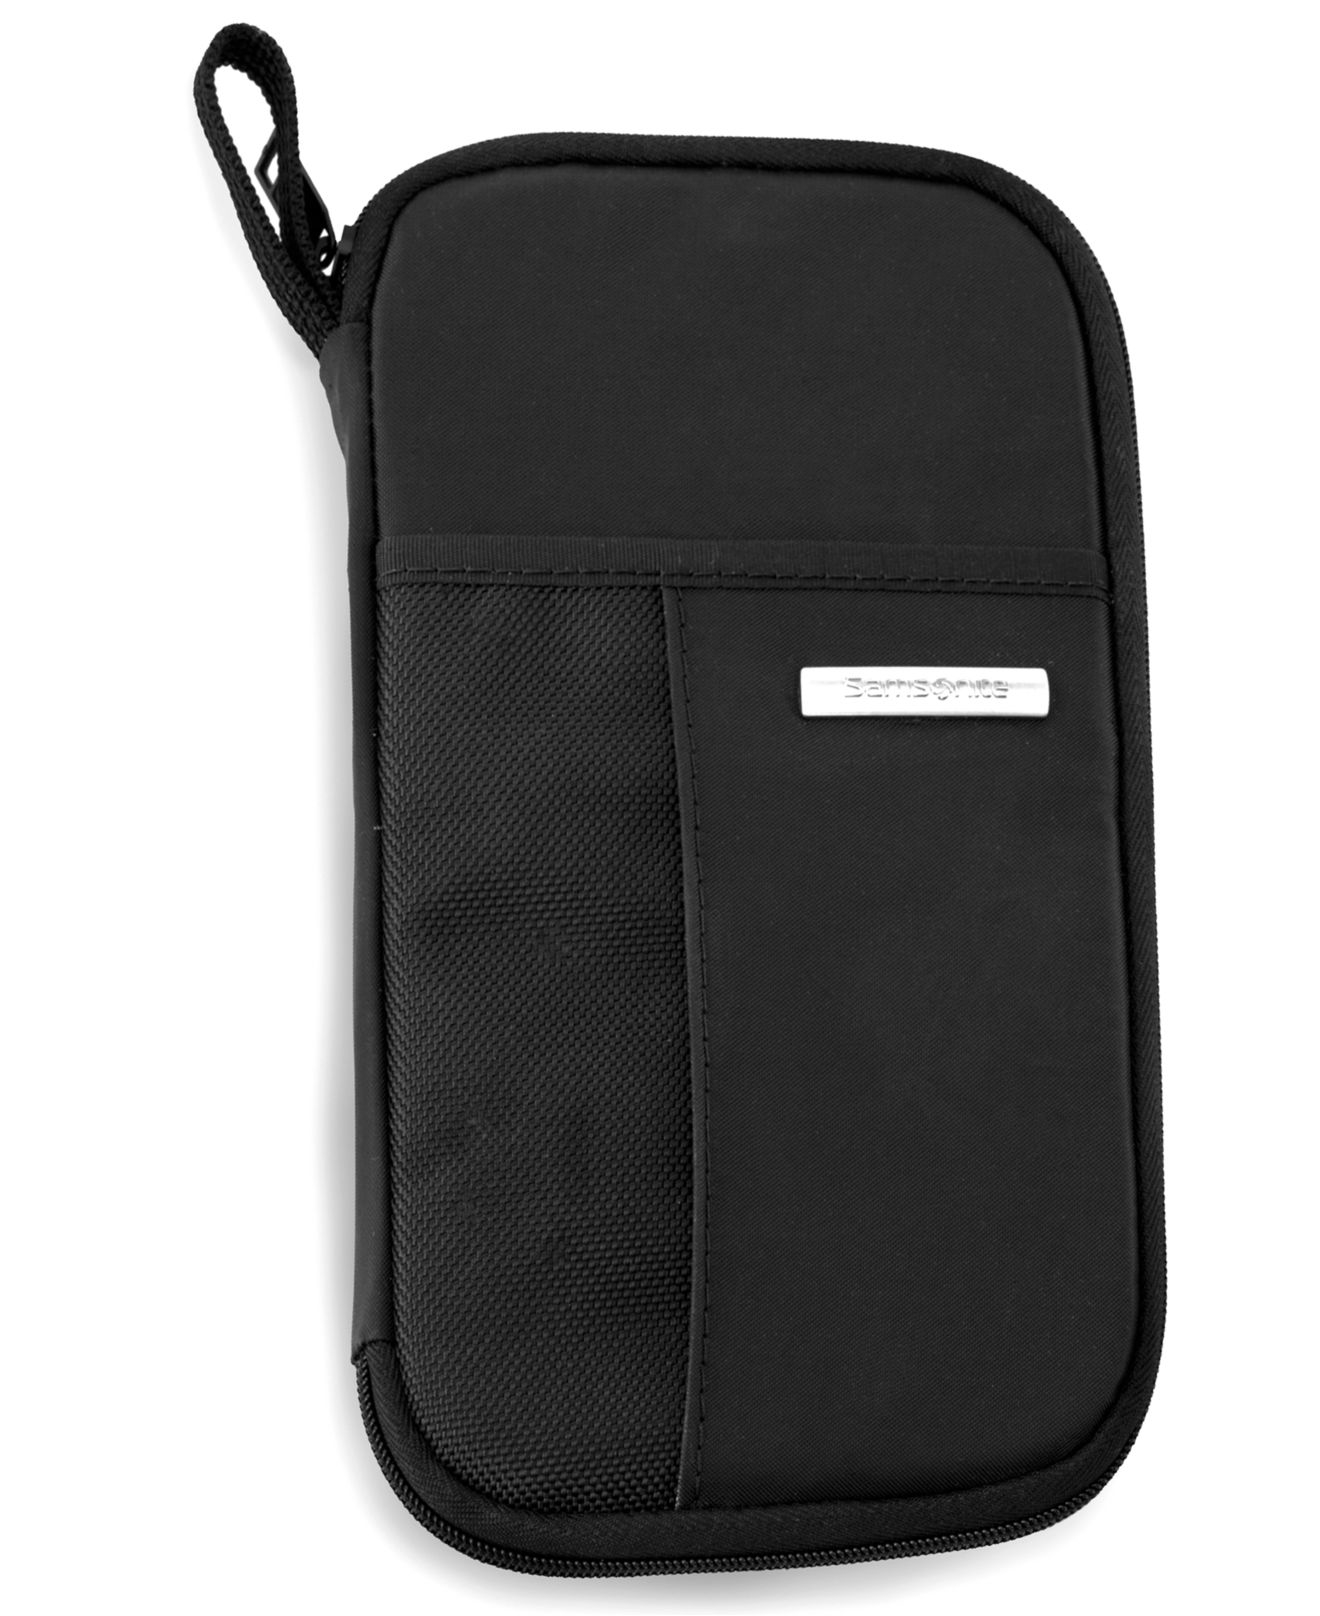 Samsonite Zip Close Travel Wallet In Black For Men Lyst